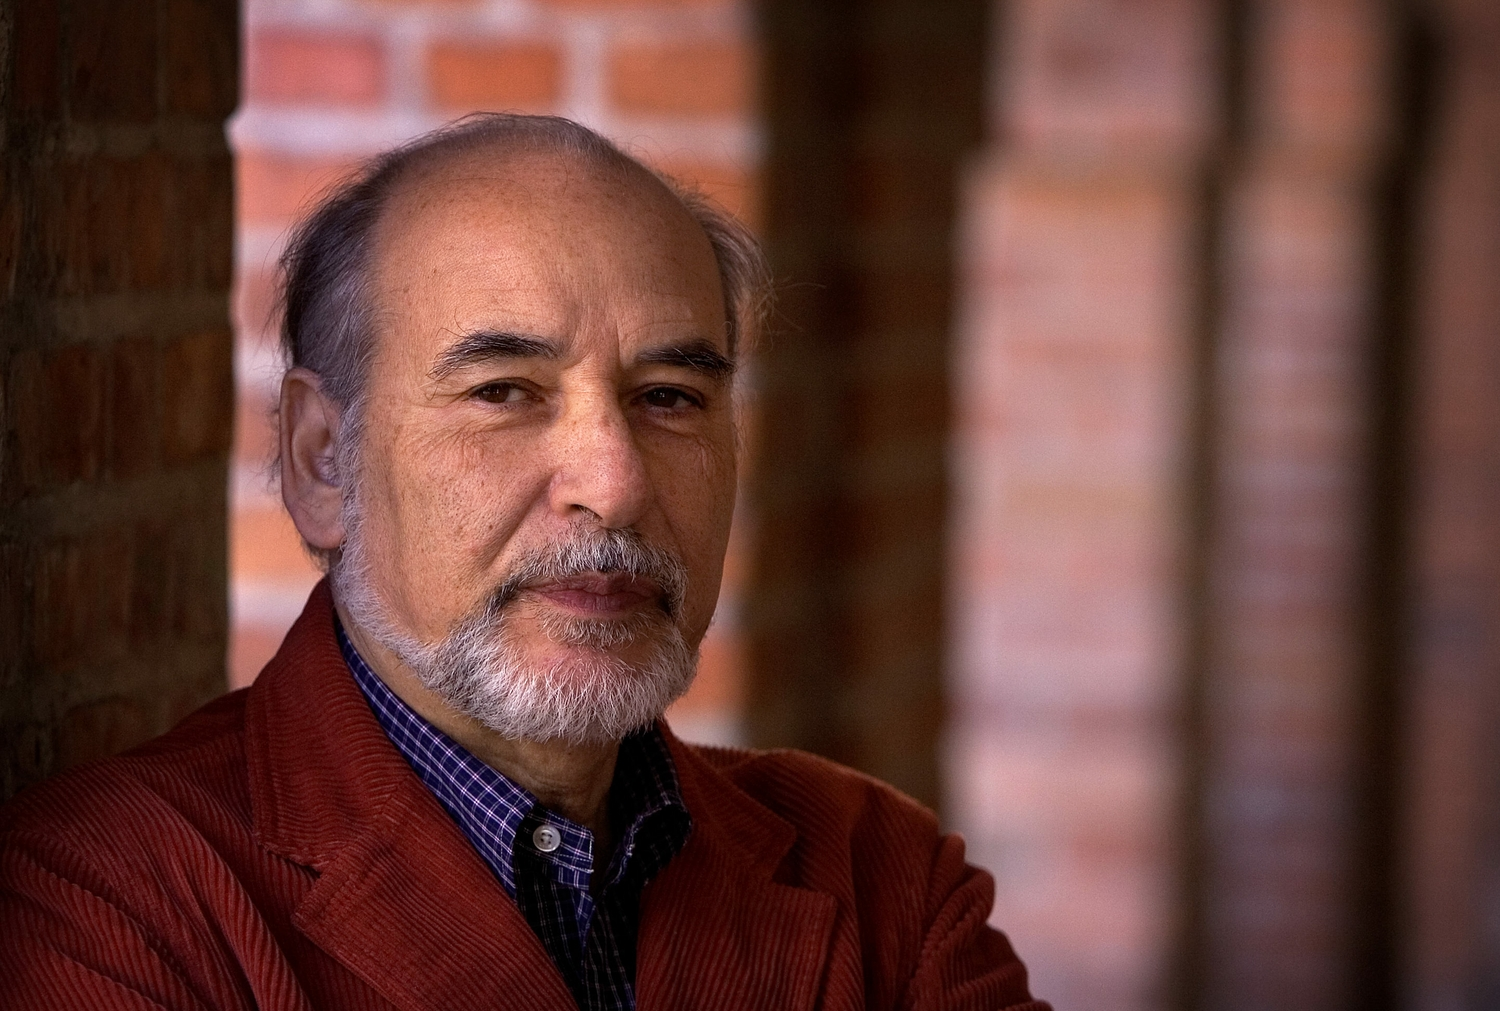 Tahar Ben Jelloun net worth